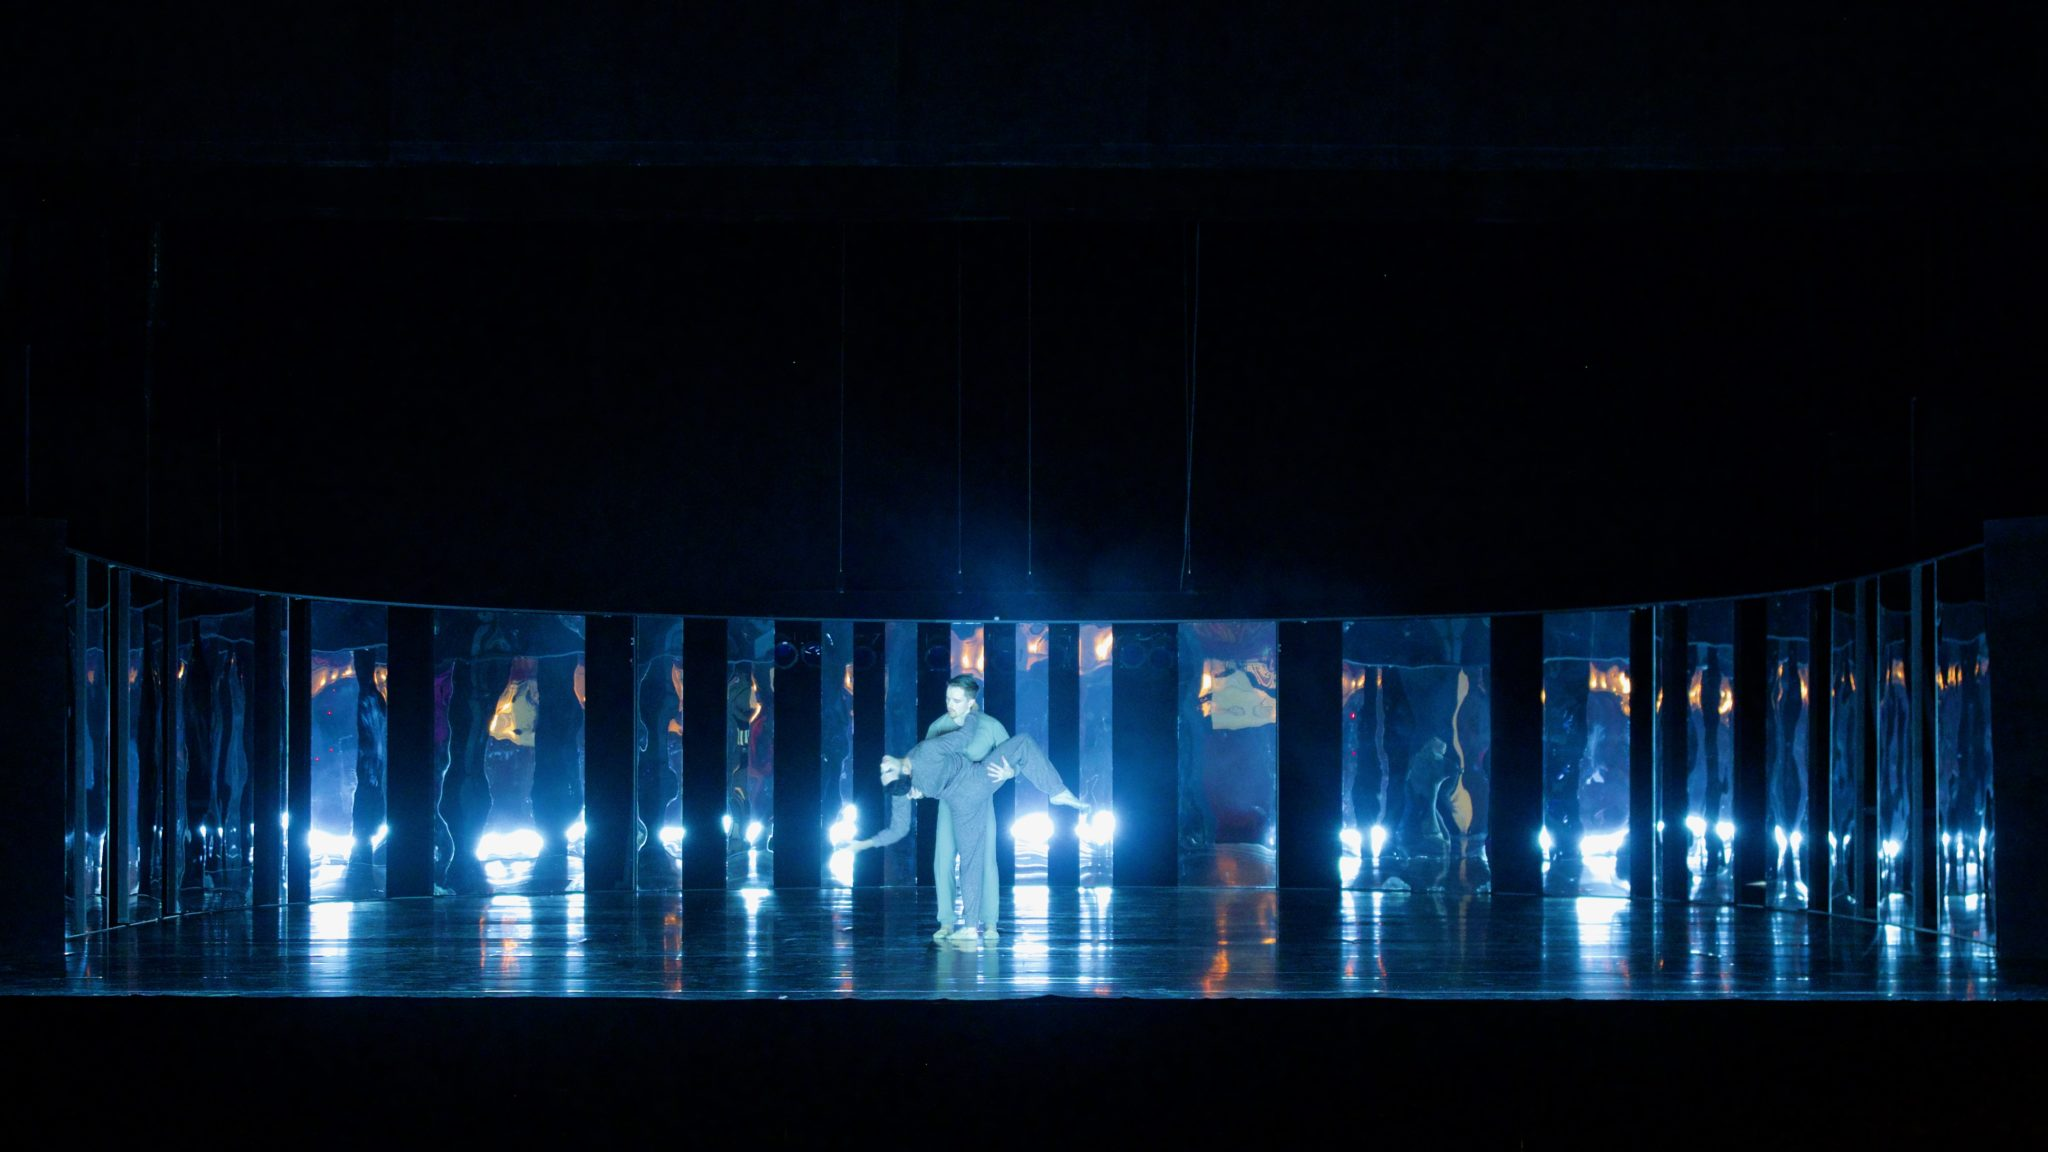 New World - choreography: Robert Binet, set design: Shizuka Hariu, costume: Harriet Jung, Reid Barthelme, light: Floriaan Ganzevoort